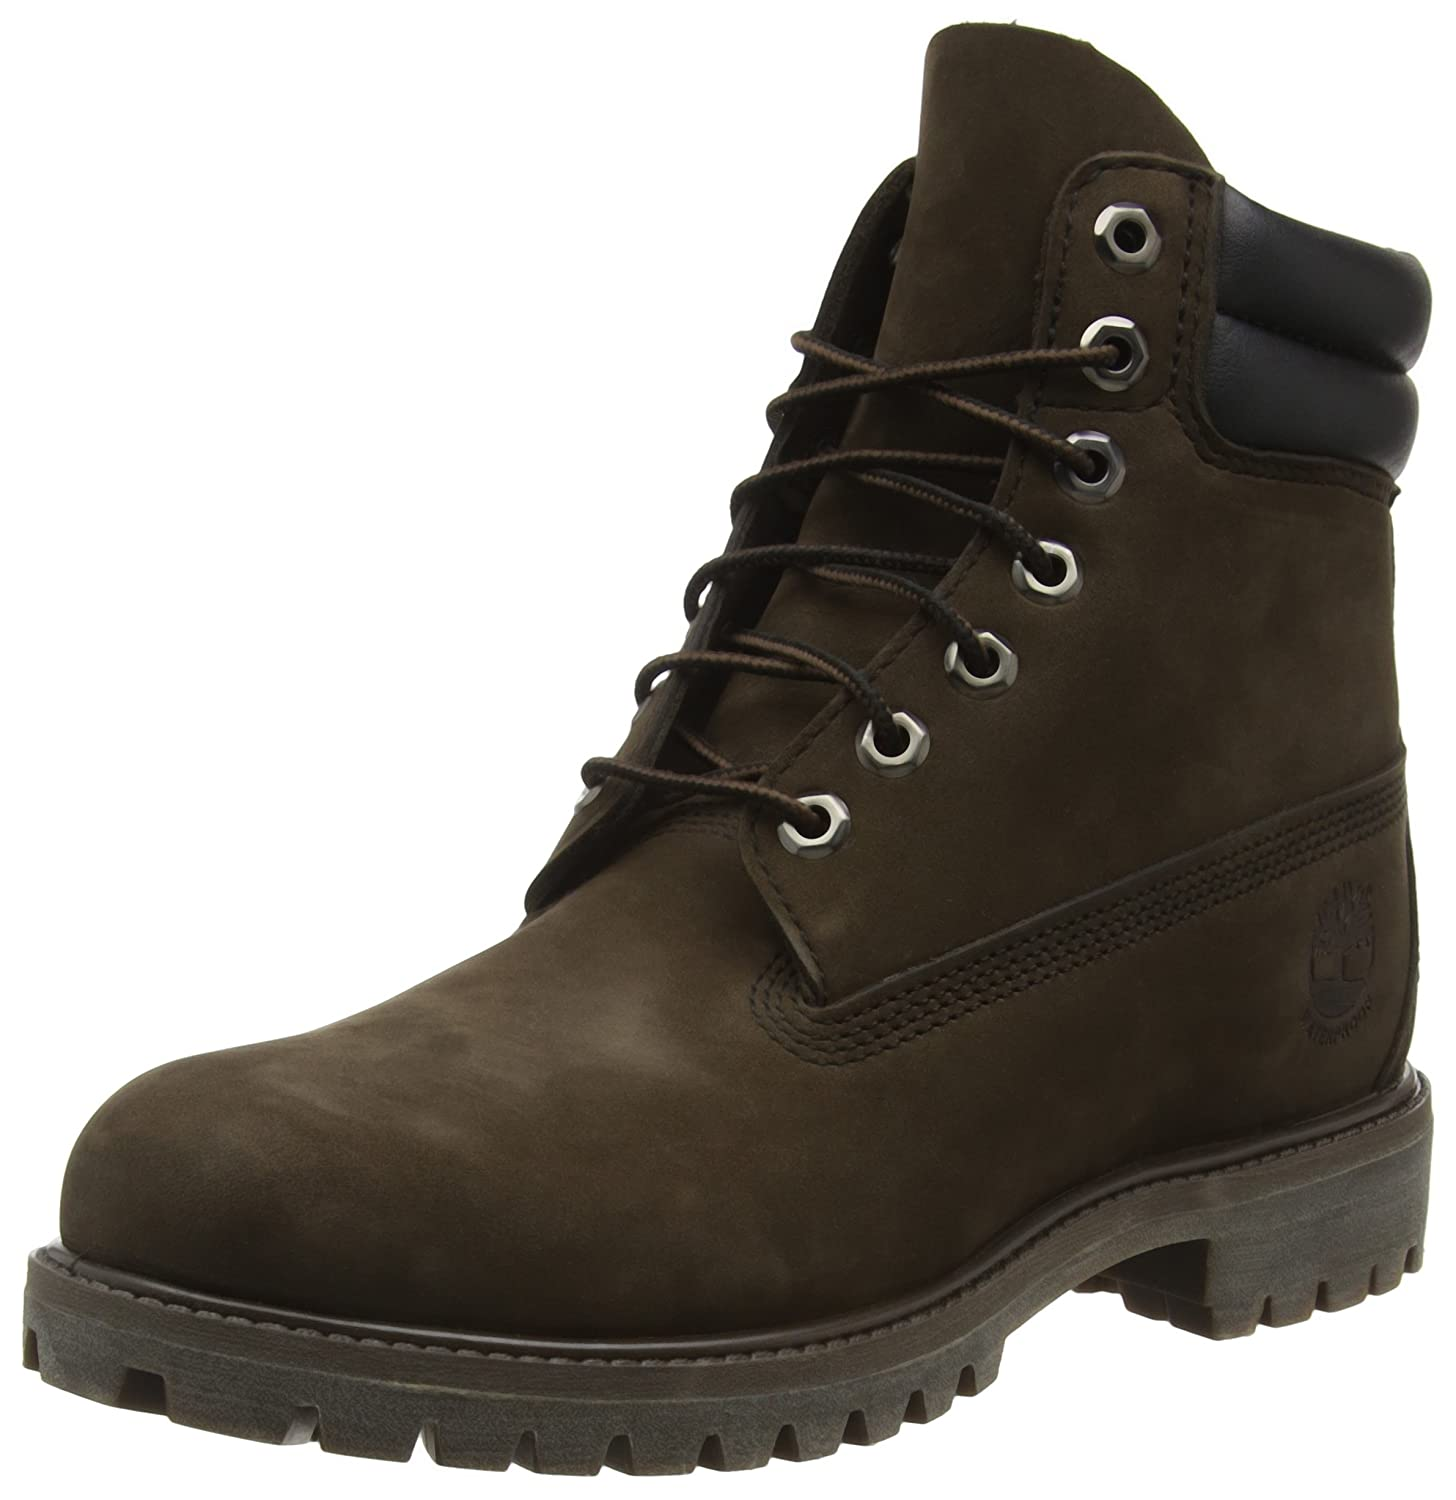 TALLA 41.5 EU. Timberland 6 In Double Collar Waterproof (Wide Fit), Botas para Hombre